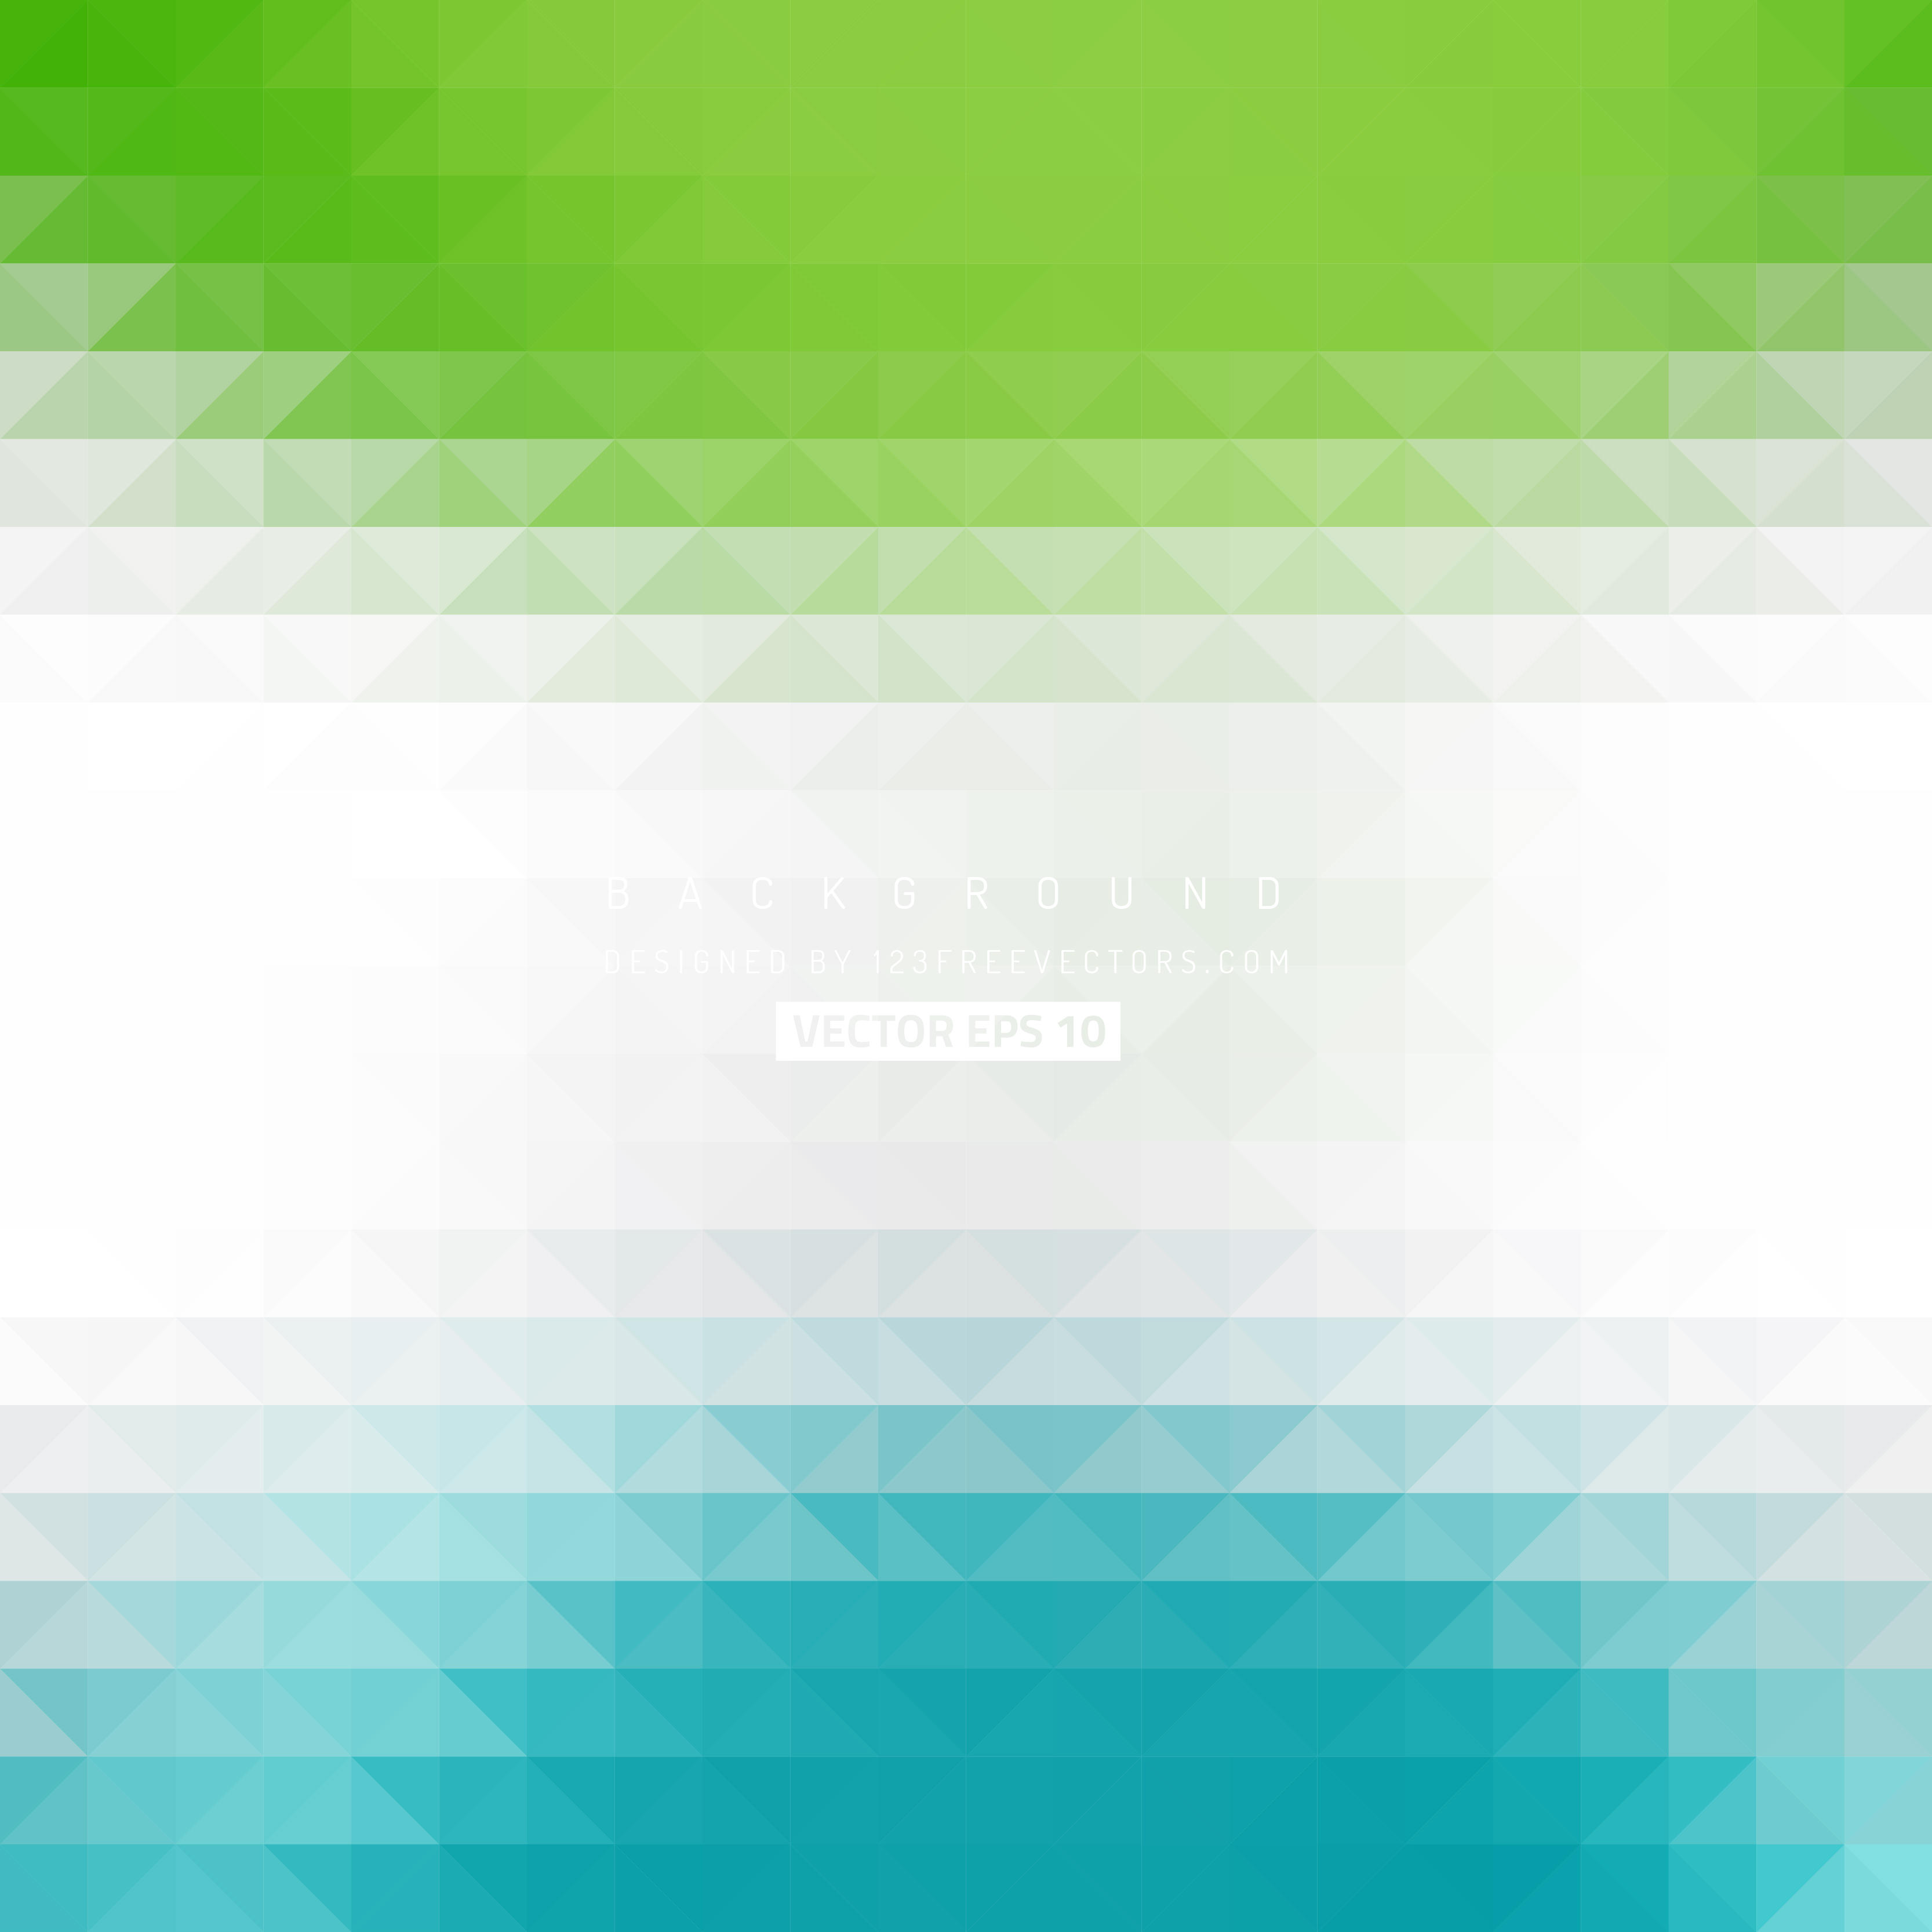 Black Camouflage Wallpaper Blue Green Triangle Vector Background